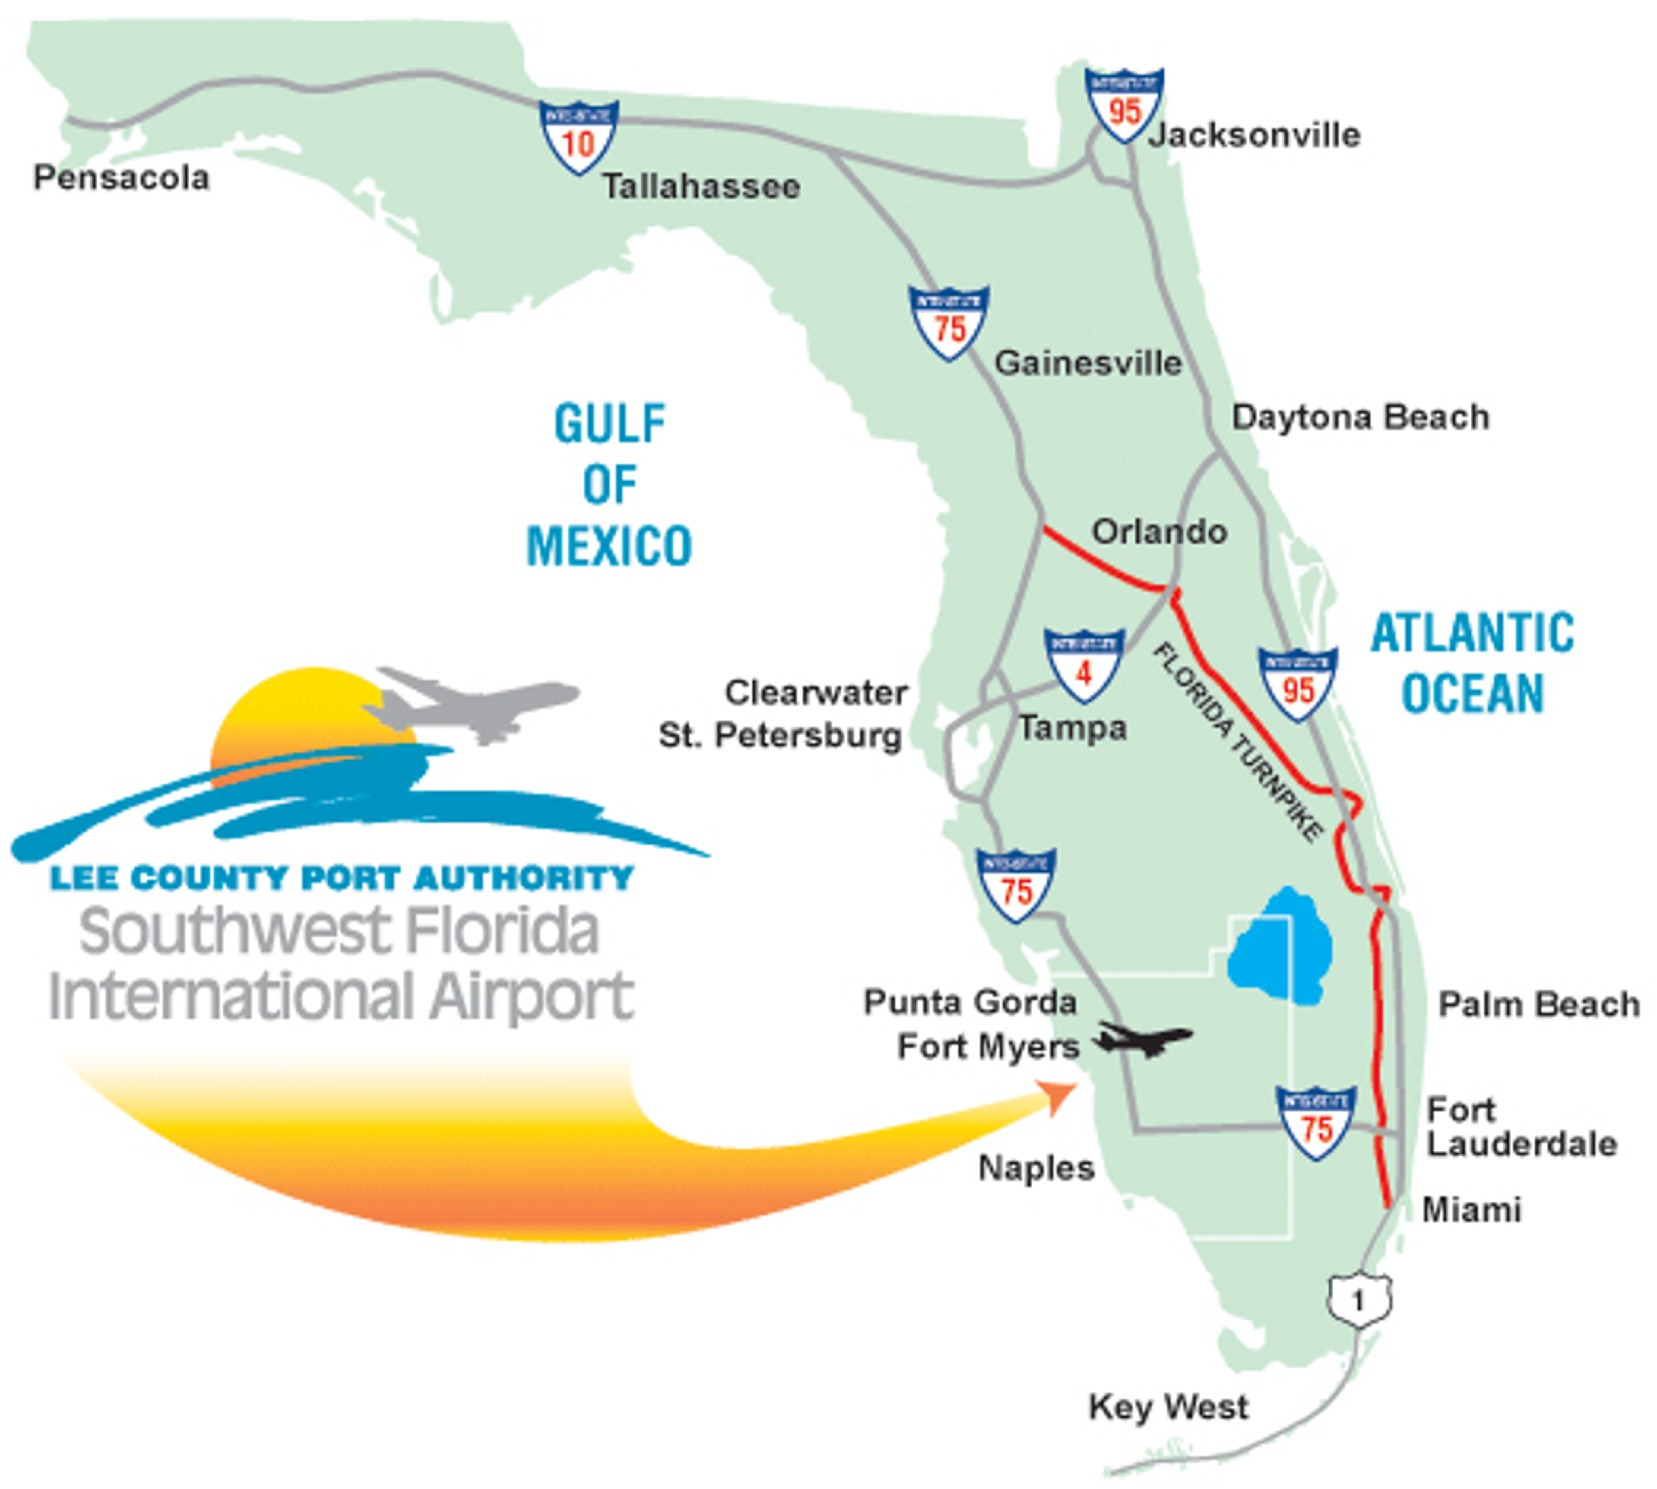 Southwest Florida Map With Cities.Fgcu Hockey